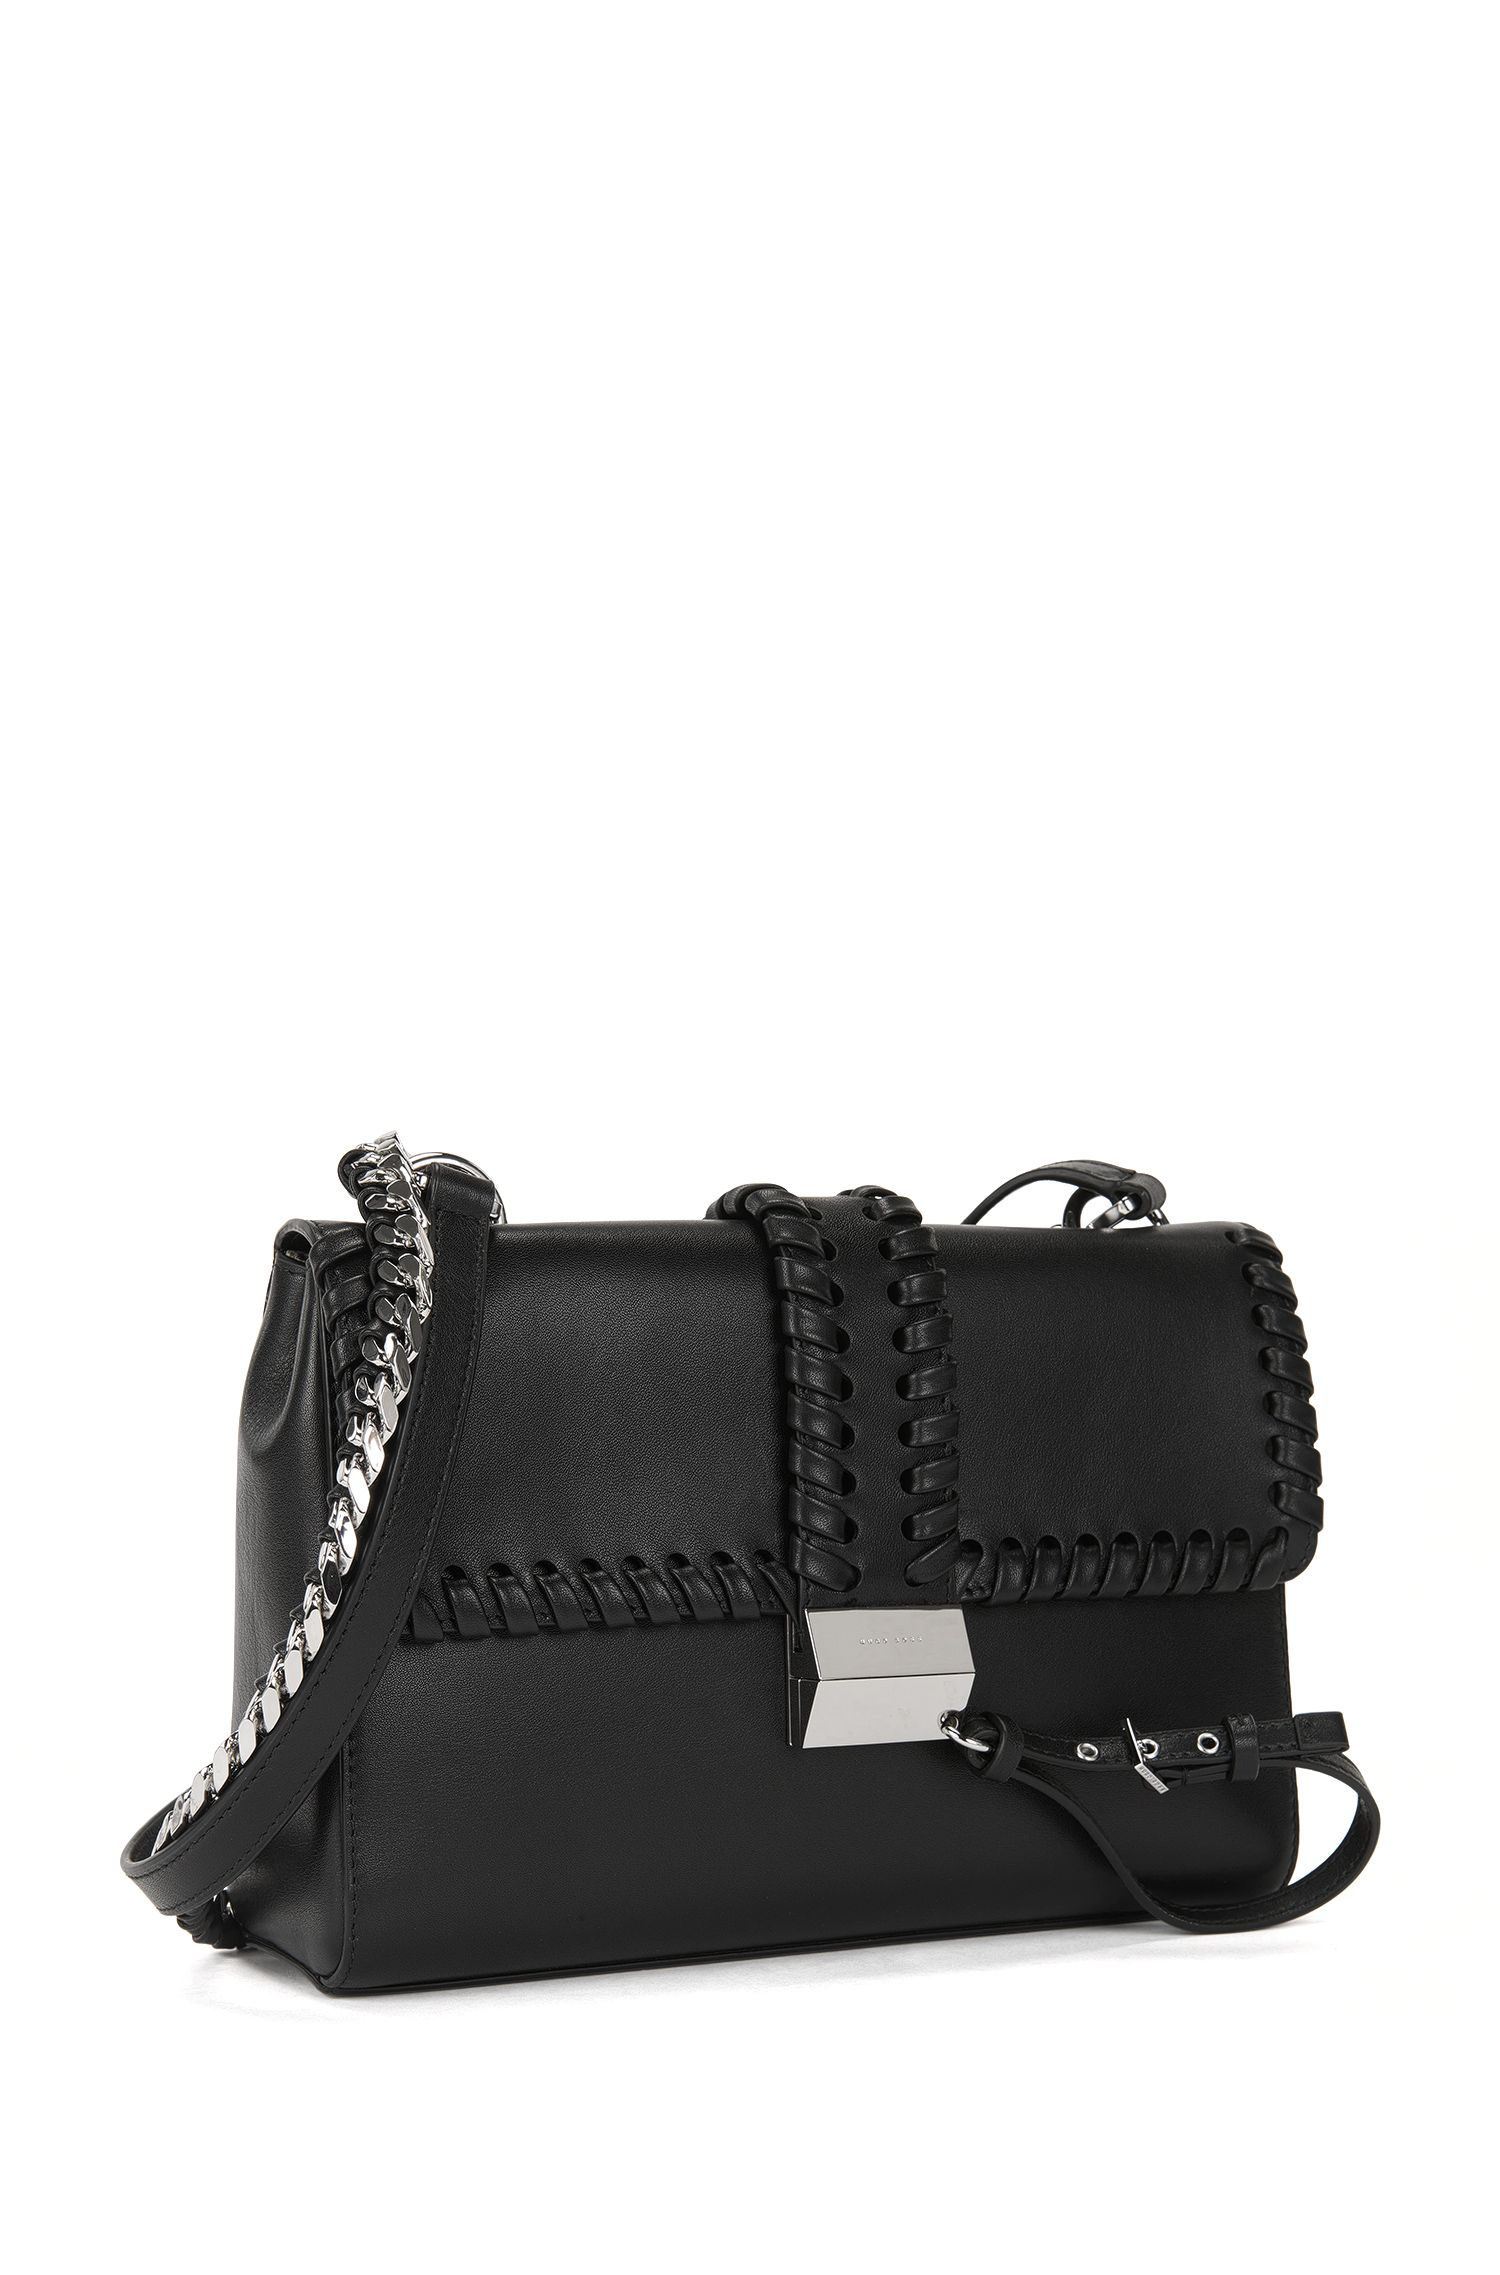 Woven-detail leather shoulder bag with lock closure